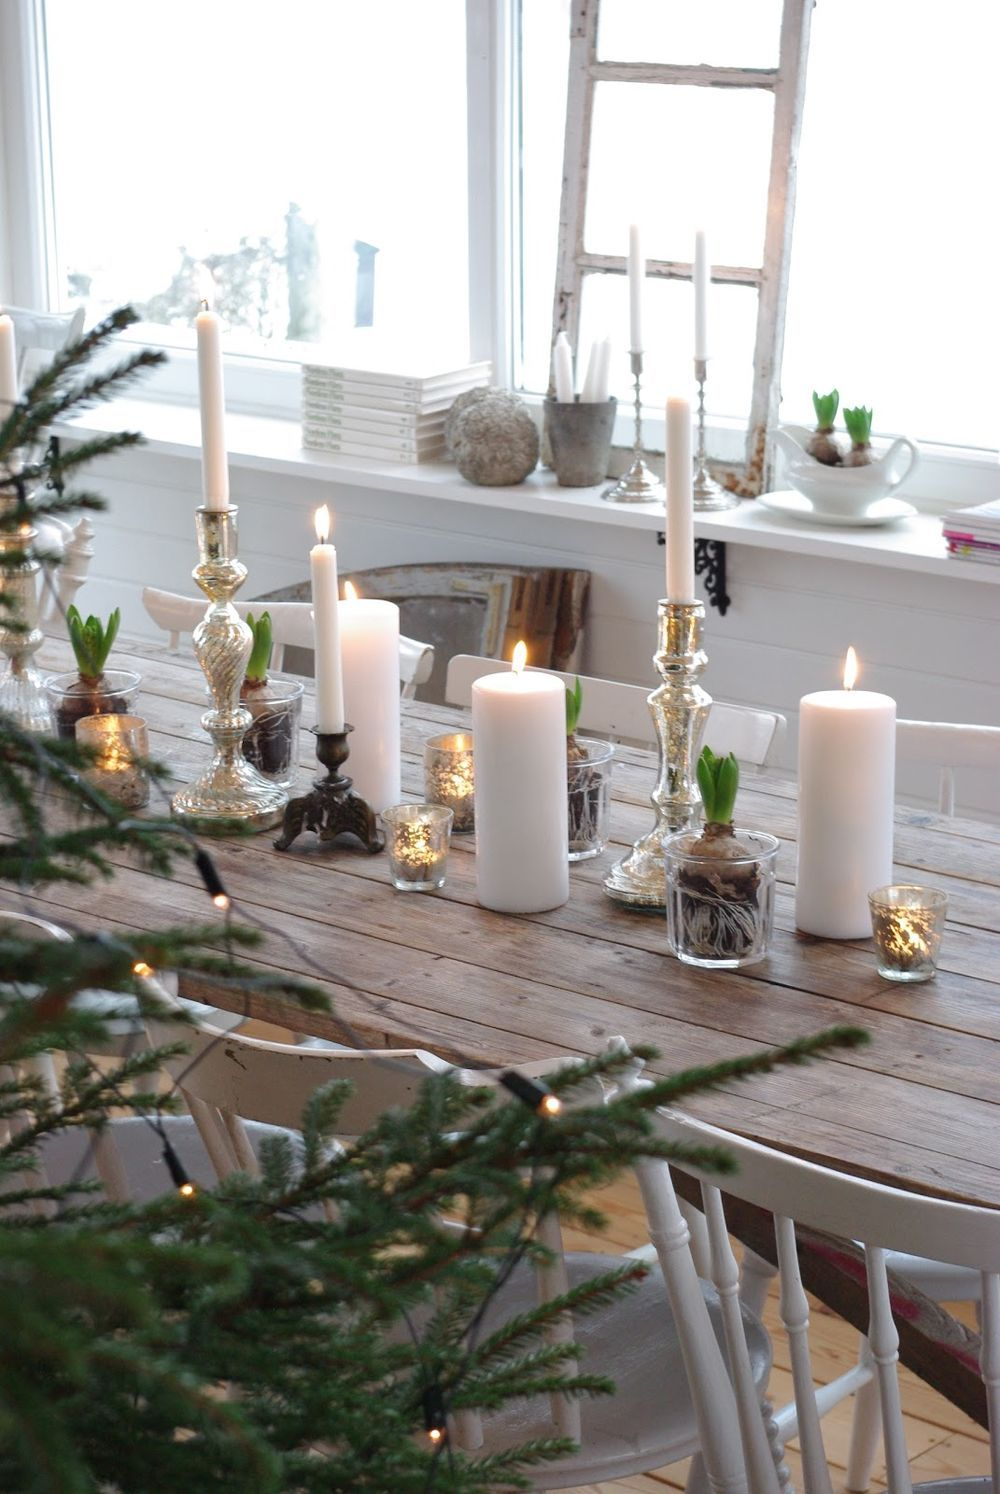 Nordic Christmas Table Setting with Wood Dining Table via frokeniknopp